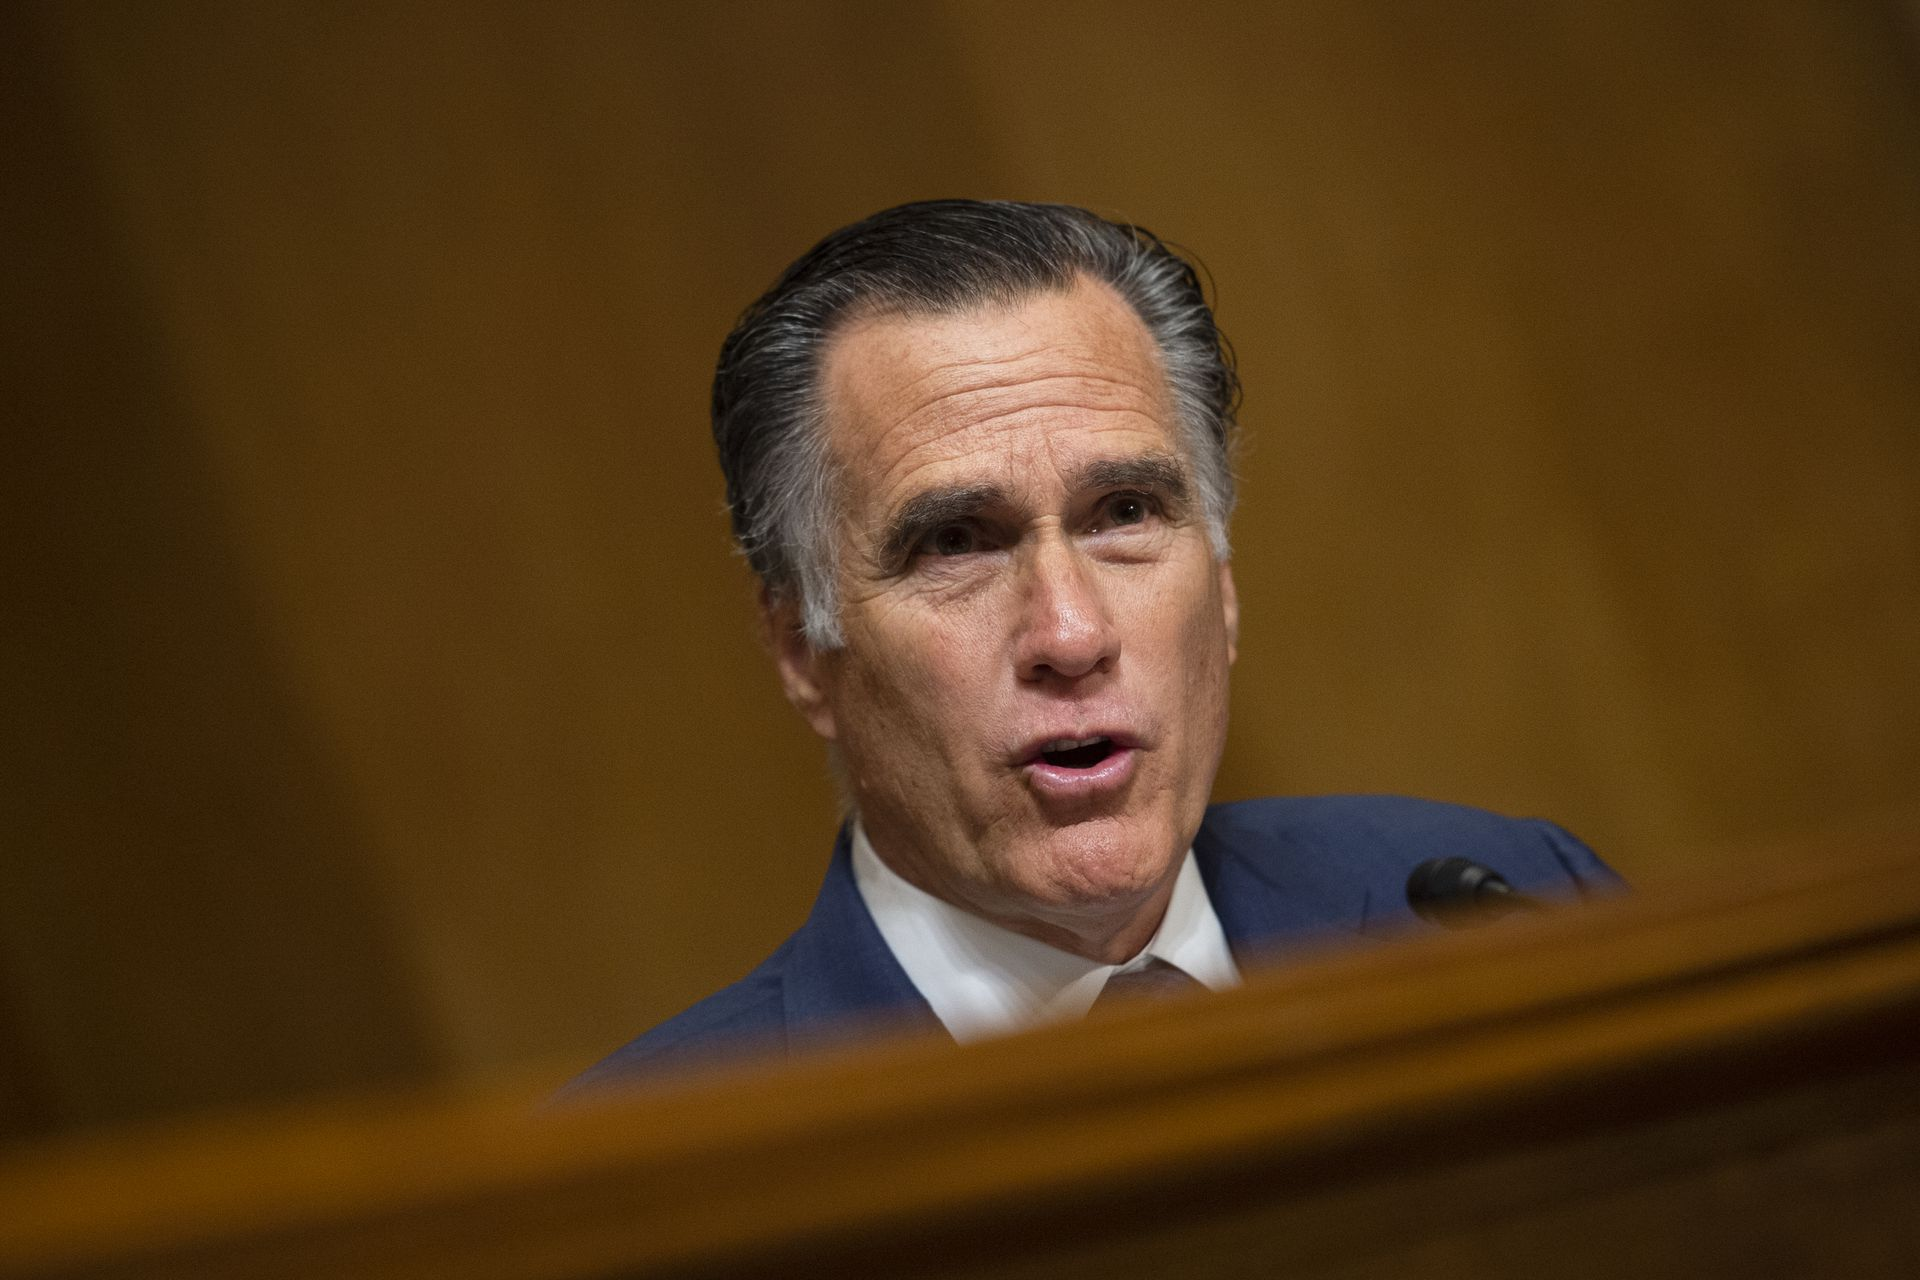 Romney says he has seen no evidence Ukraine interfered in 2016